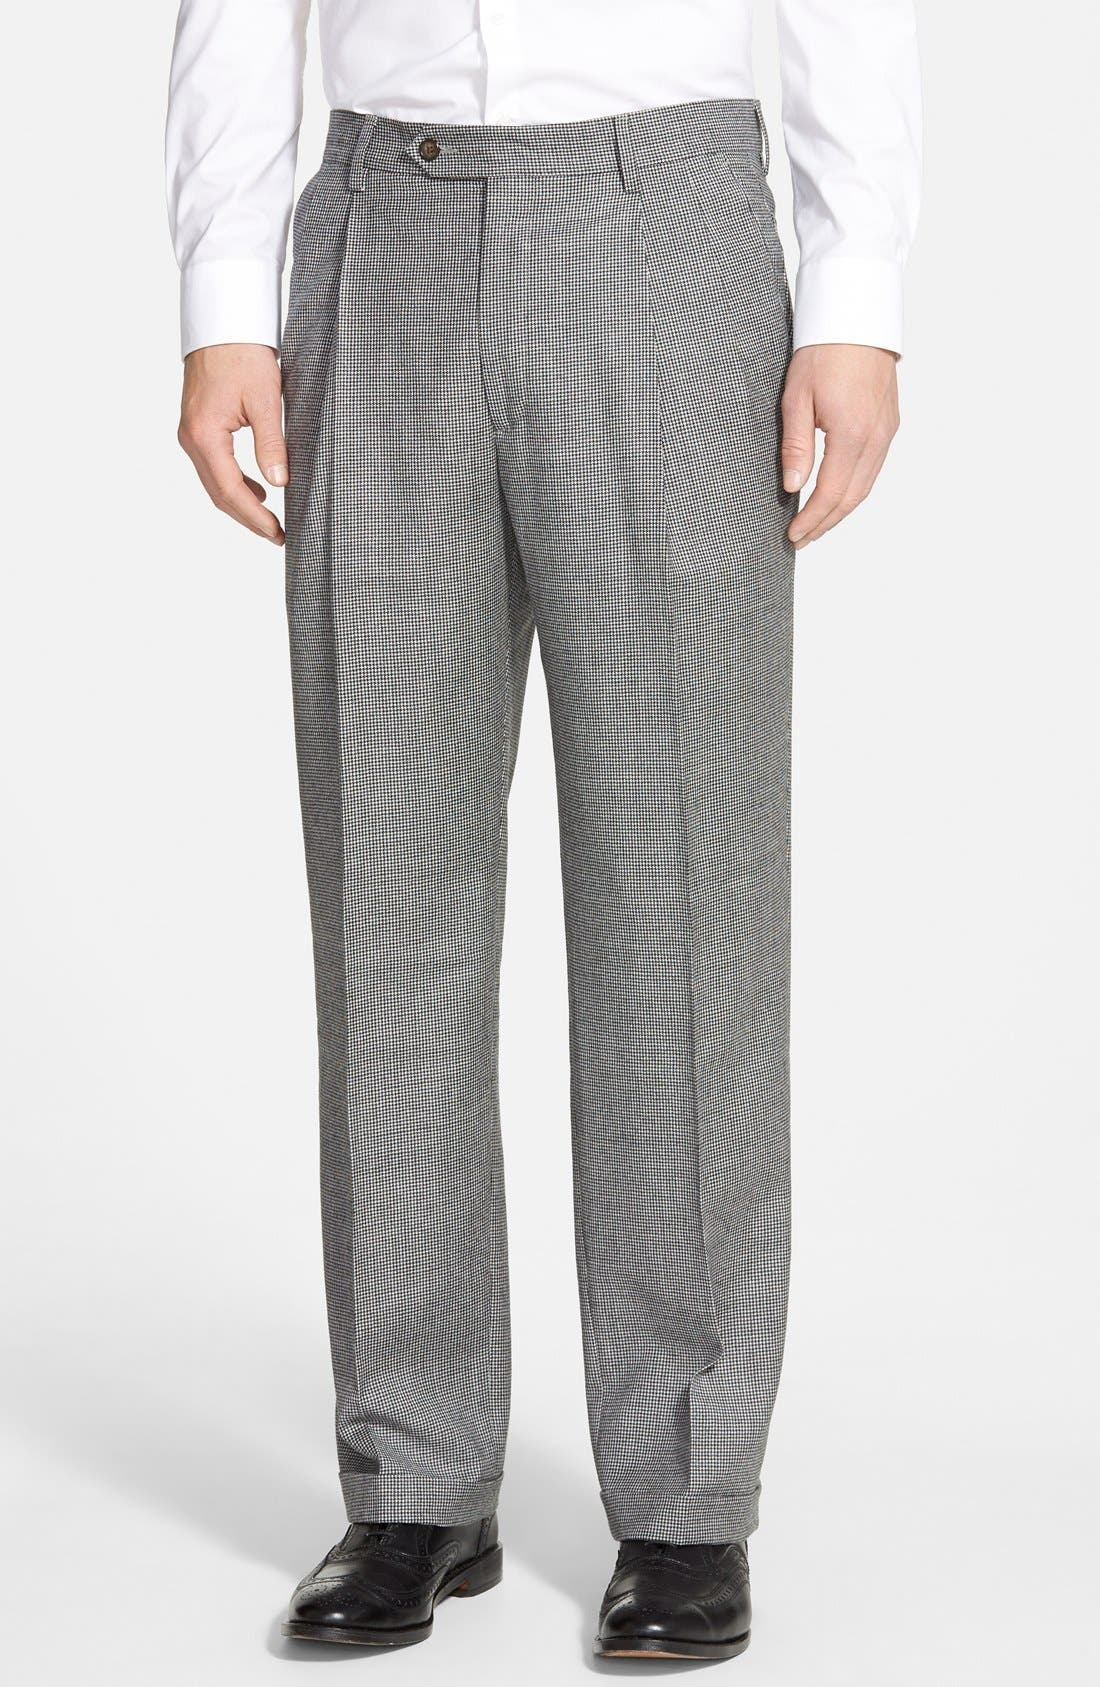 Pleated Houndstooth Wool Trousers,                             Main thumbnail 1, color,                             Charcoal